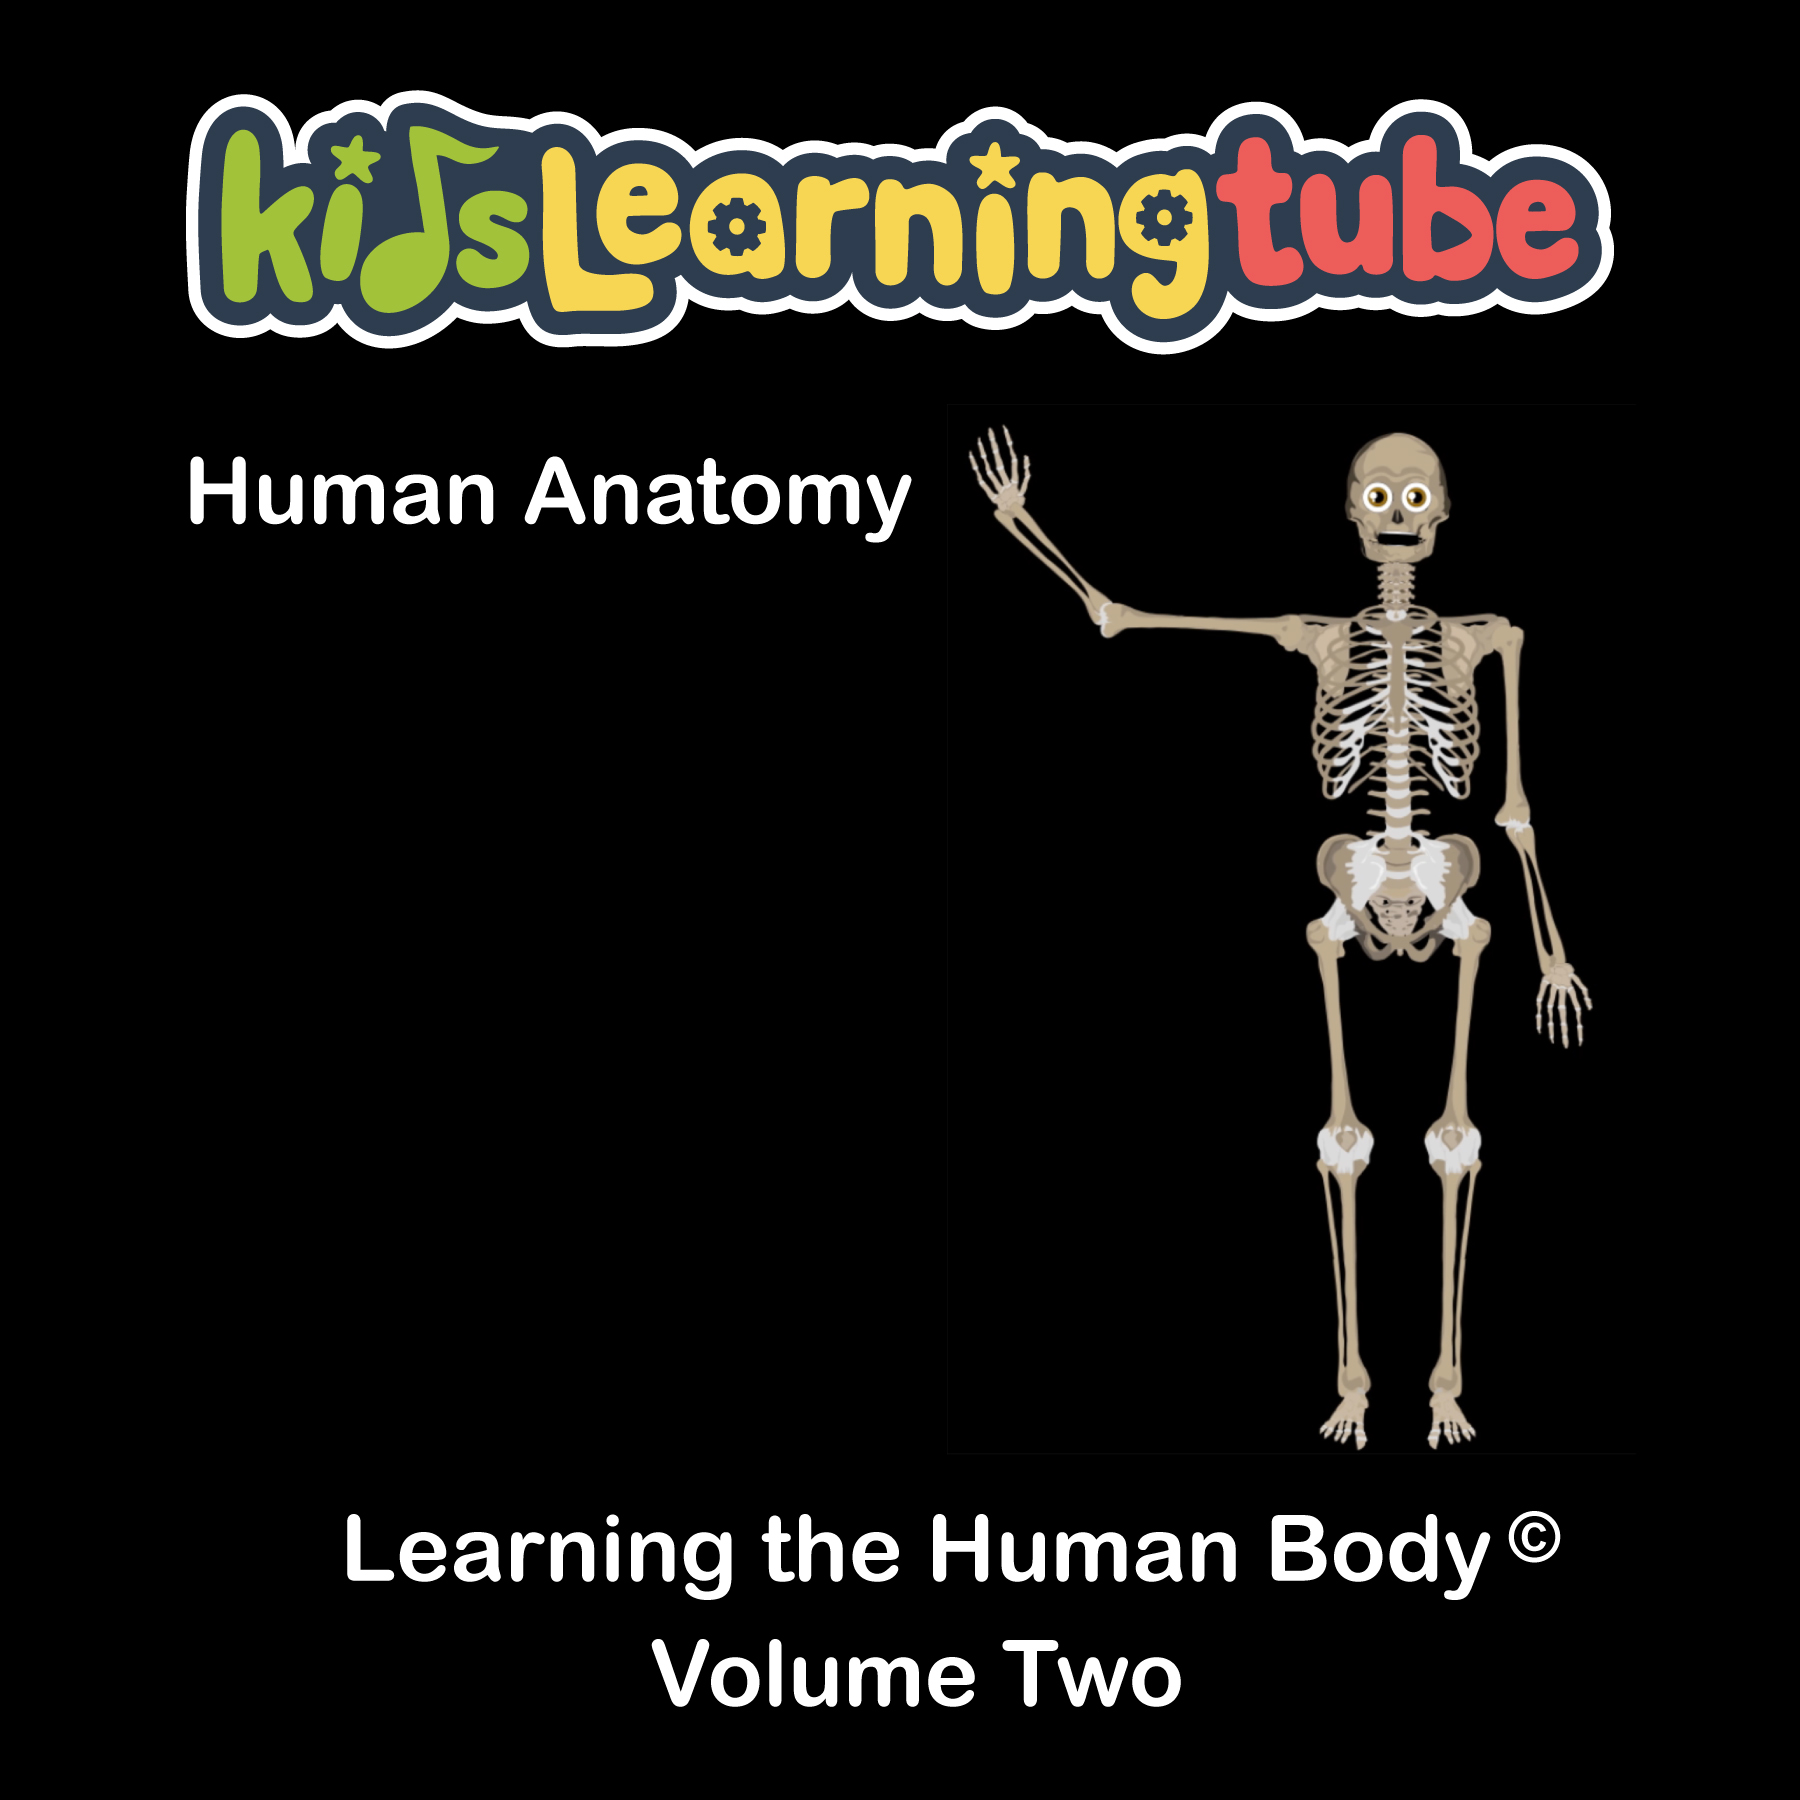 Learning the Human Body Vol. II Album  $14.00